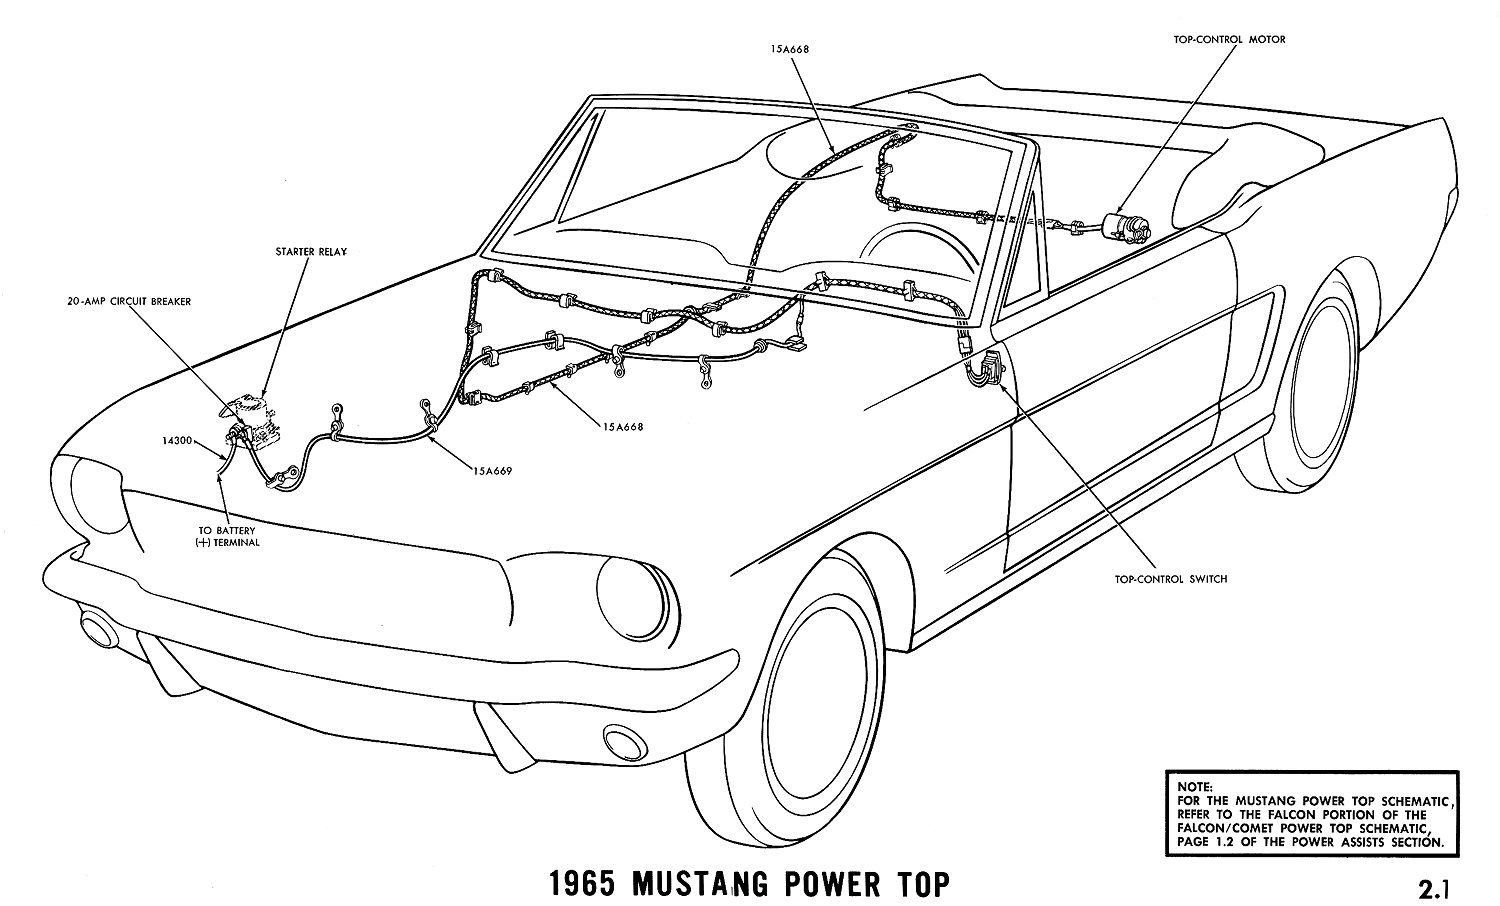 65 ford mustang wiring diagram 1965 mustang wiring diagrams average joe restoration 1965j 1965 mustang power top